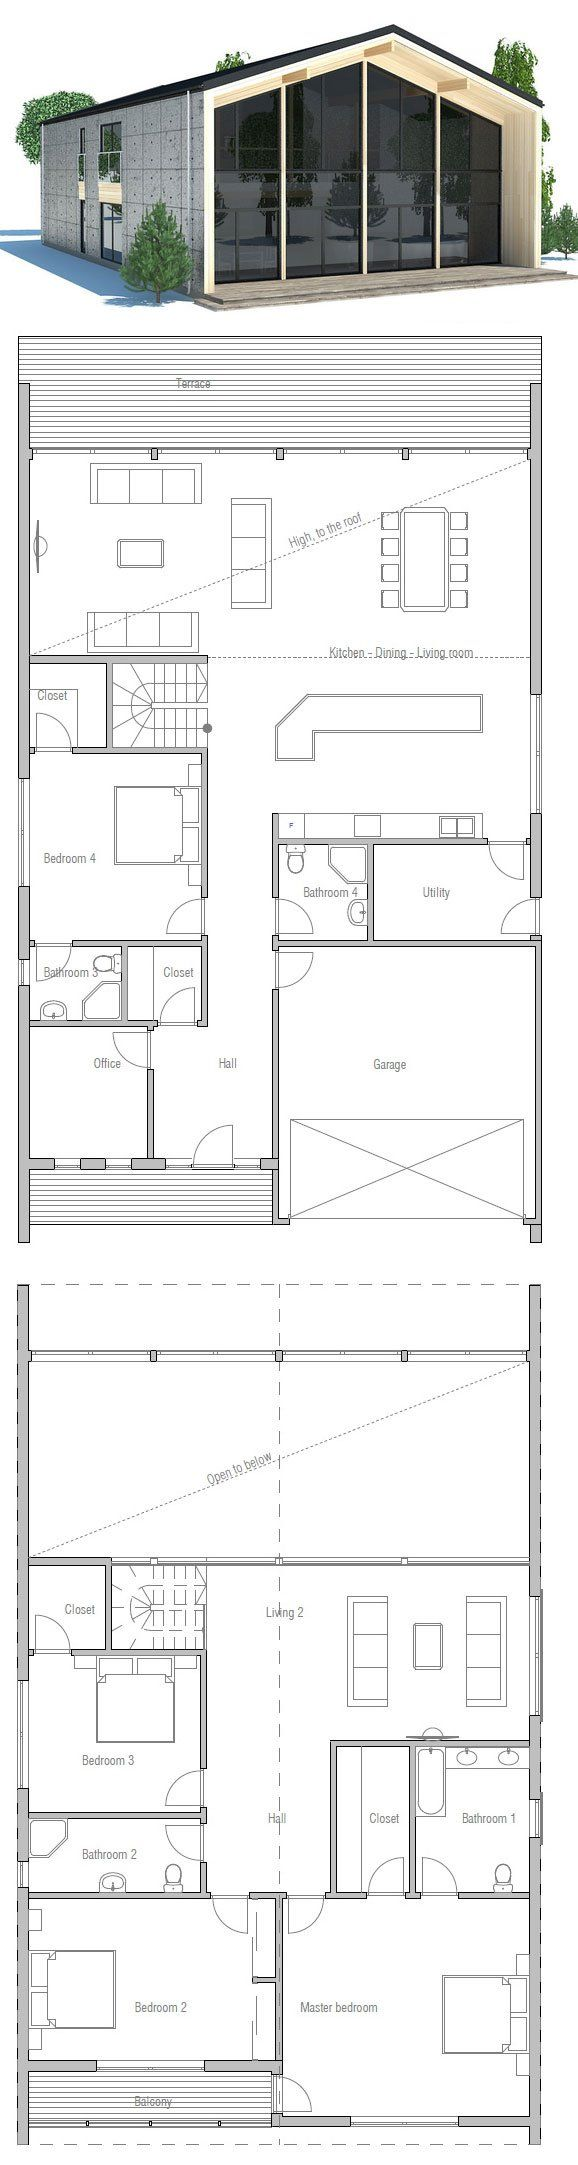 Large house to narrow lot. Modern Architecture. Floor Plan from ConceptHome.com